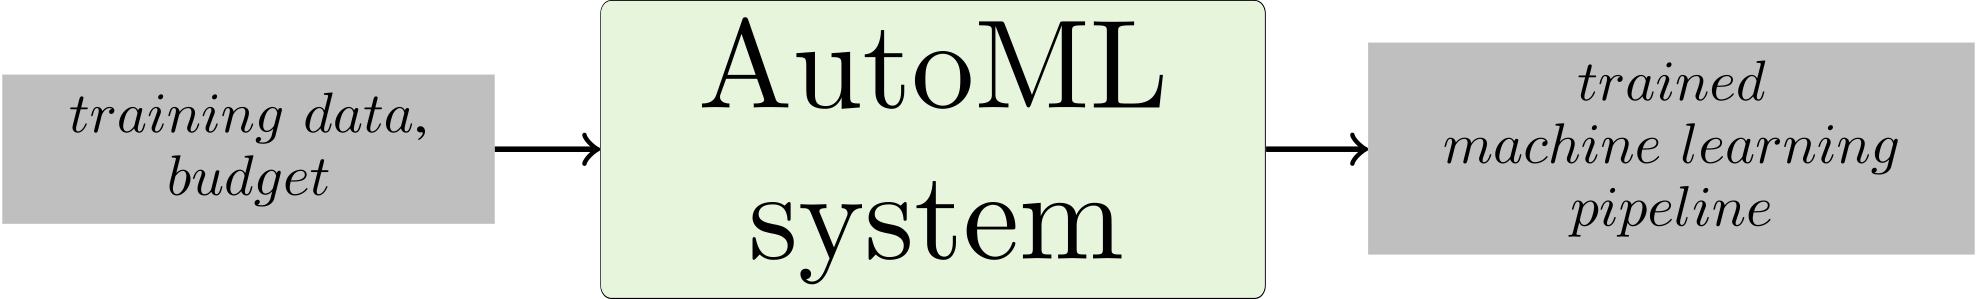 A brief depiction of an abstract AutoML system